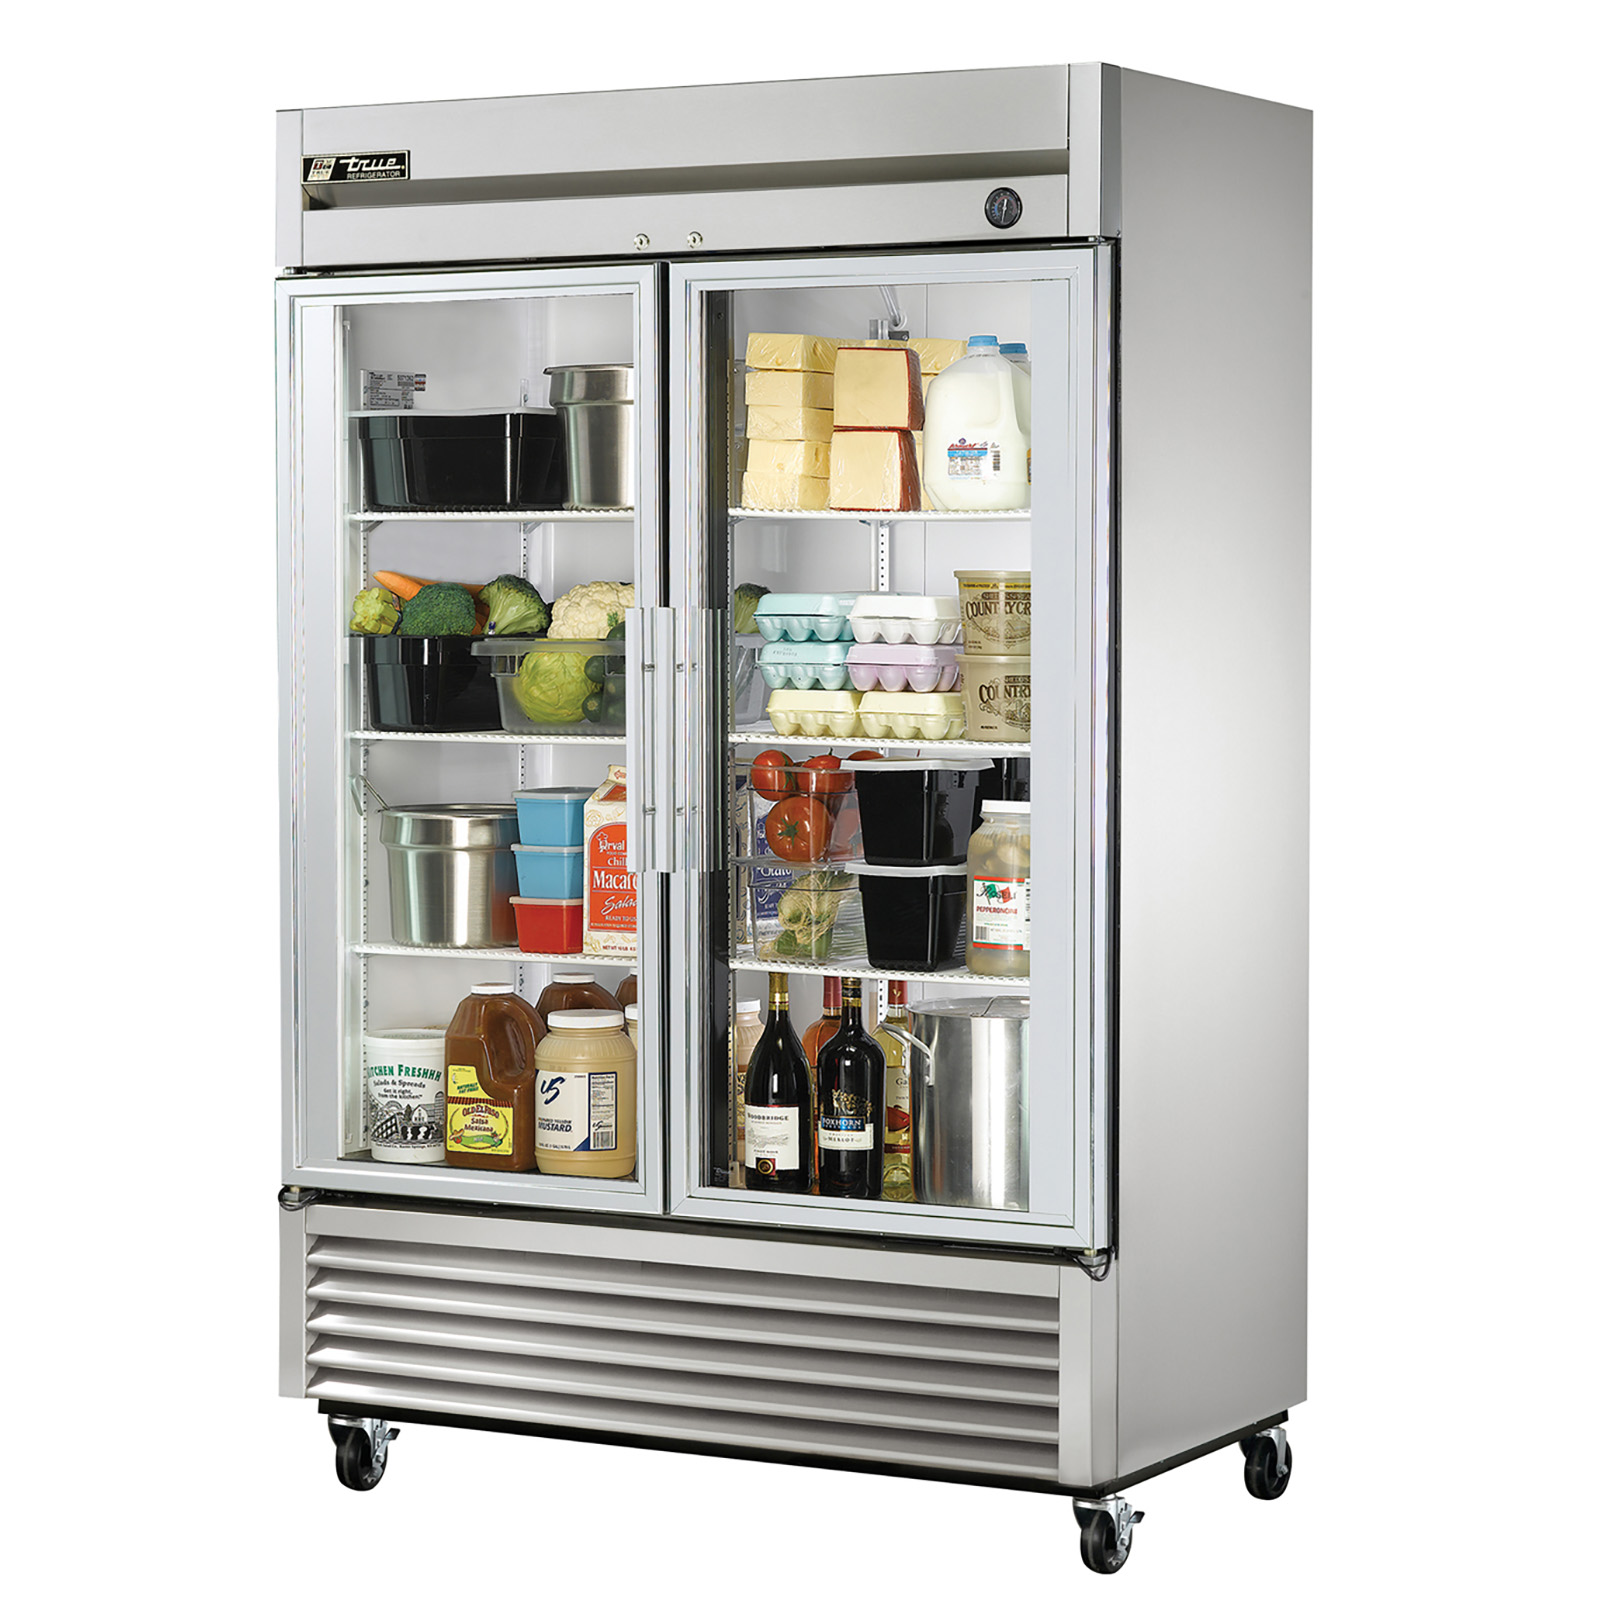 T-49G-LD – True Display Refrigerator